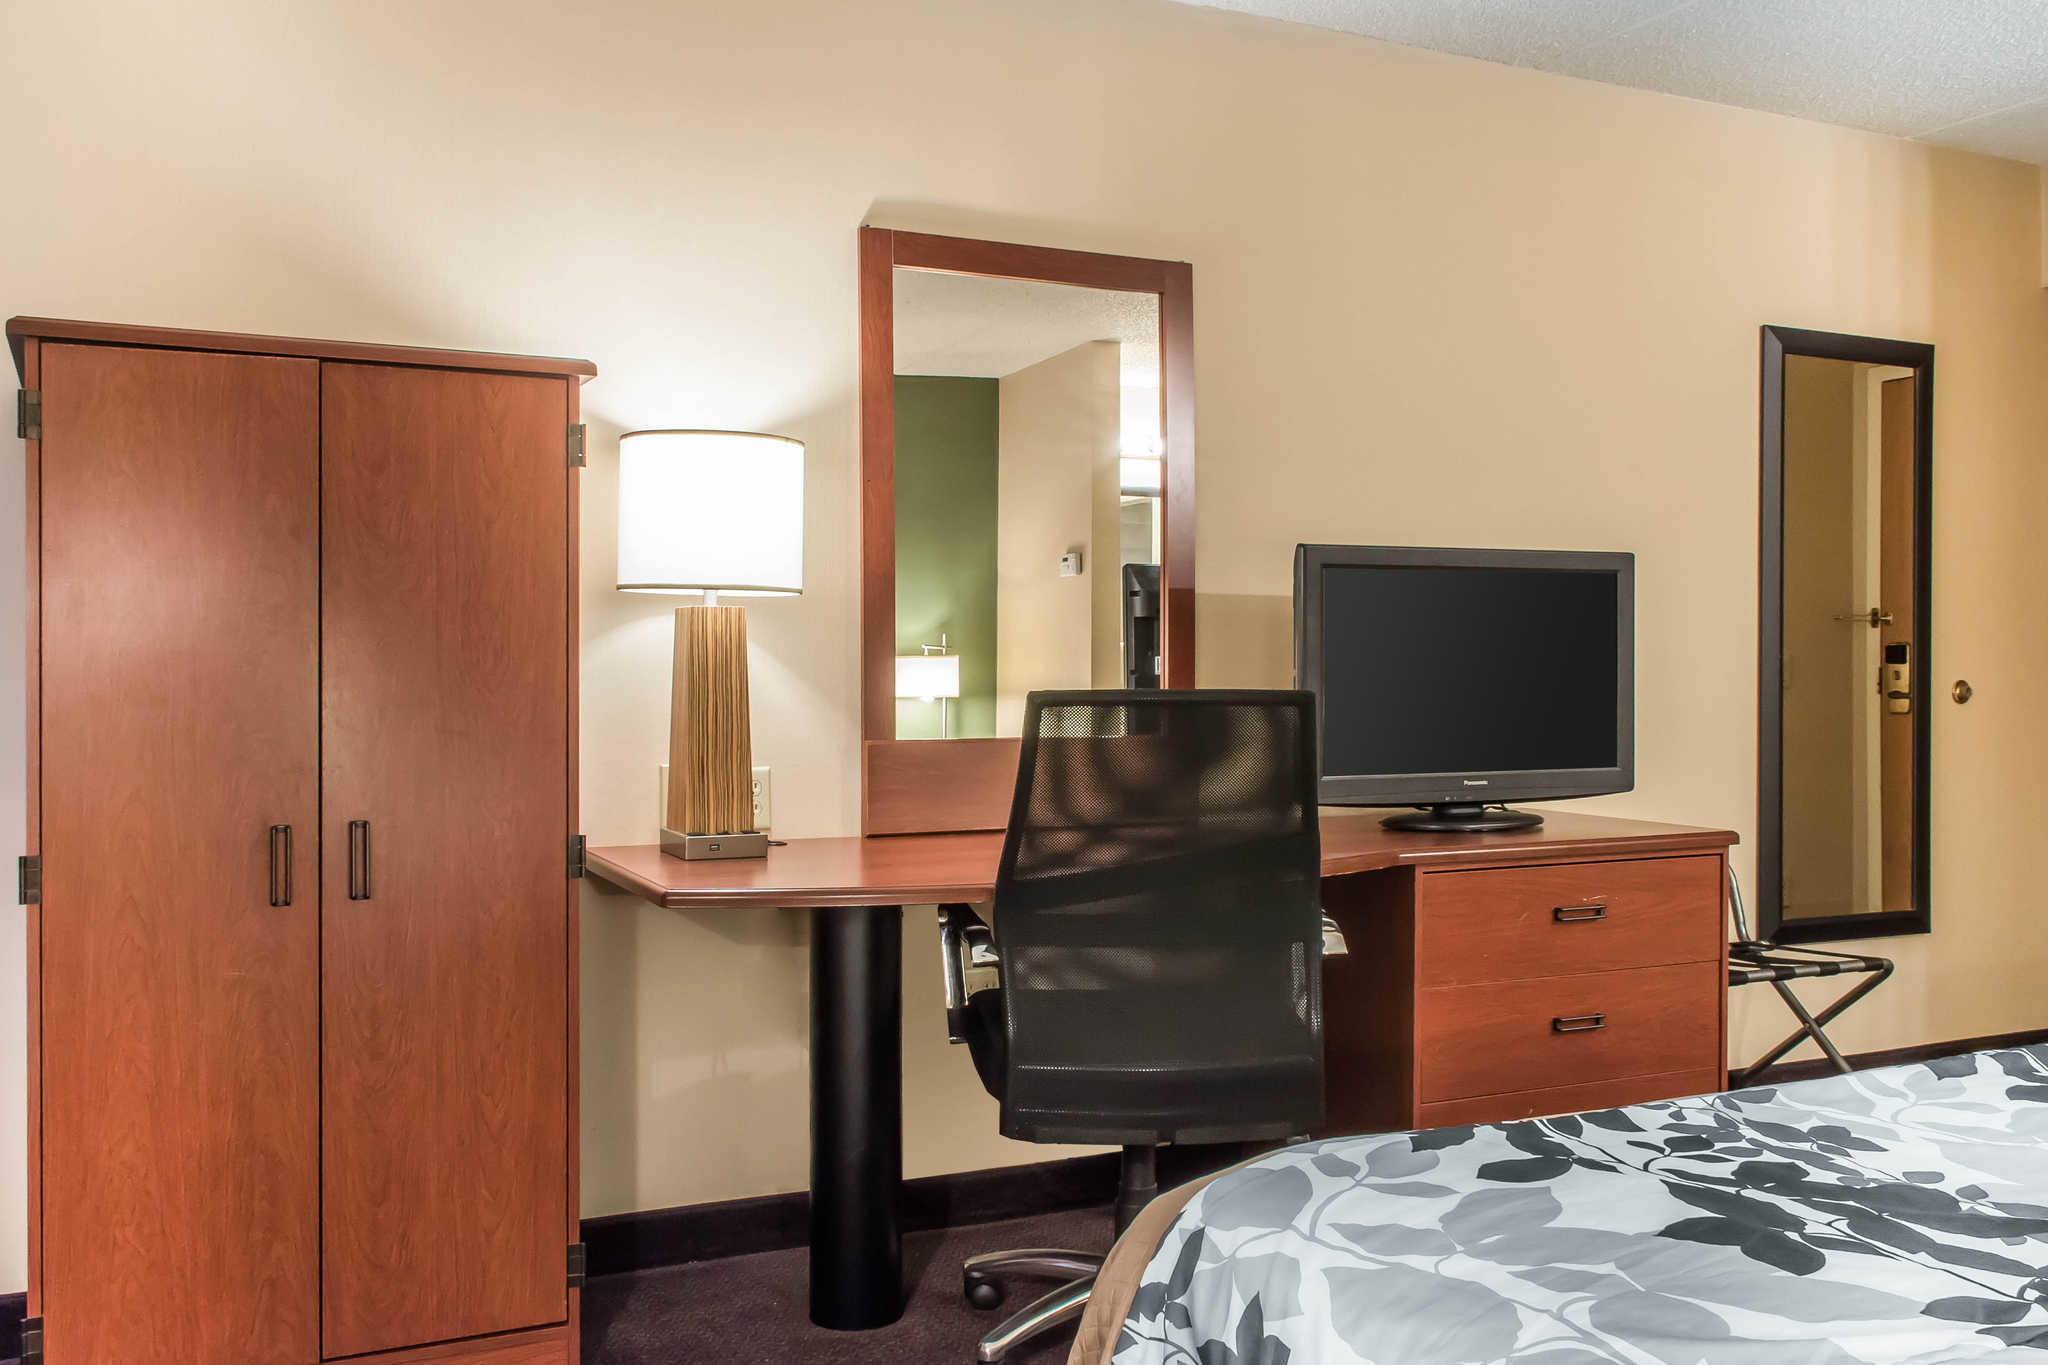 Sleep Inn & Suites of Lancaster County image 17